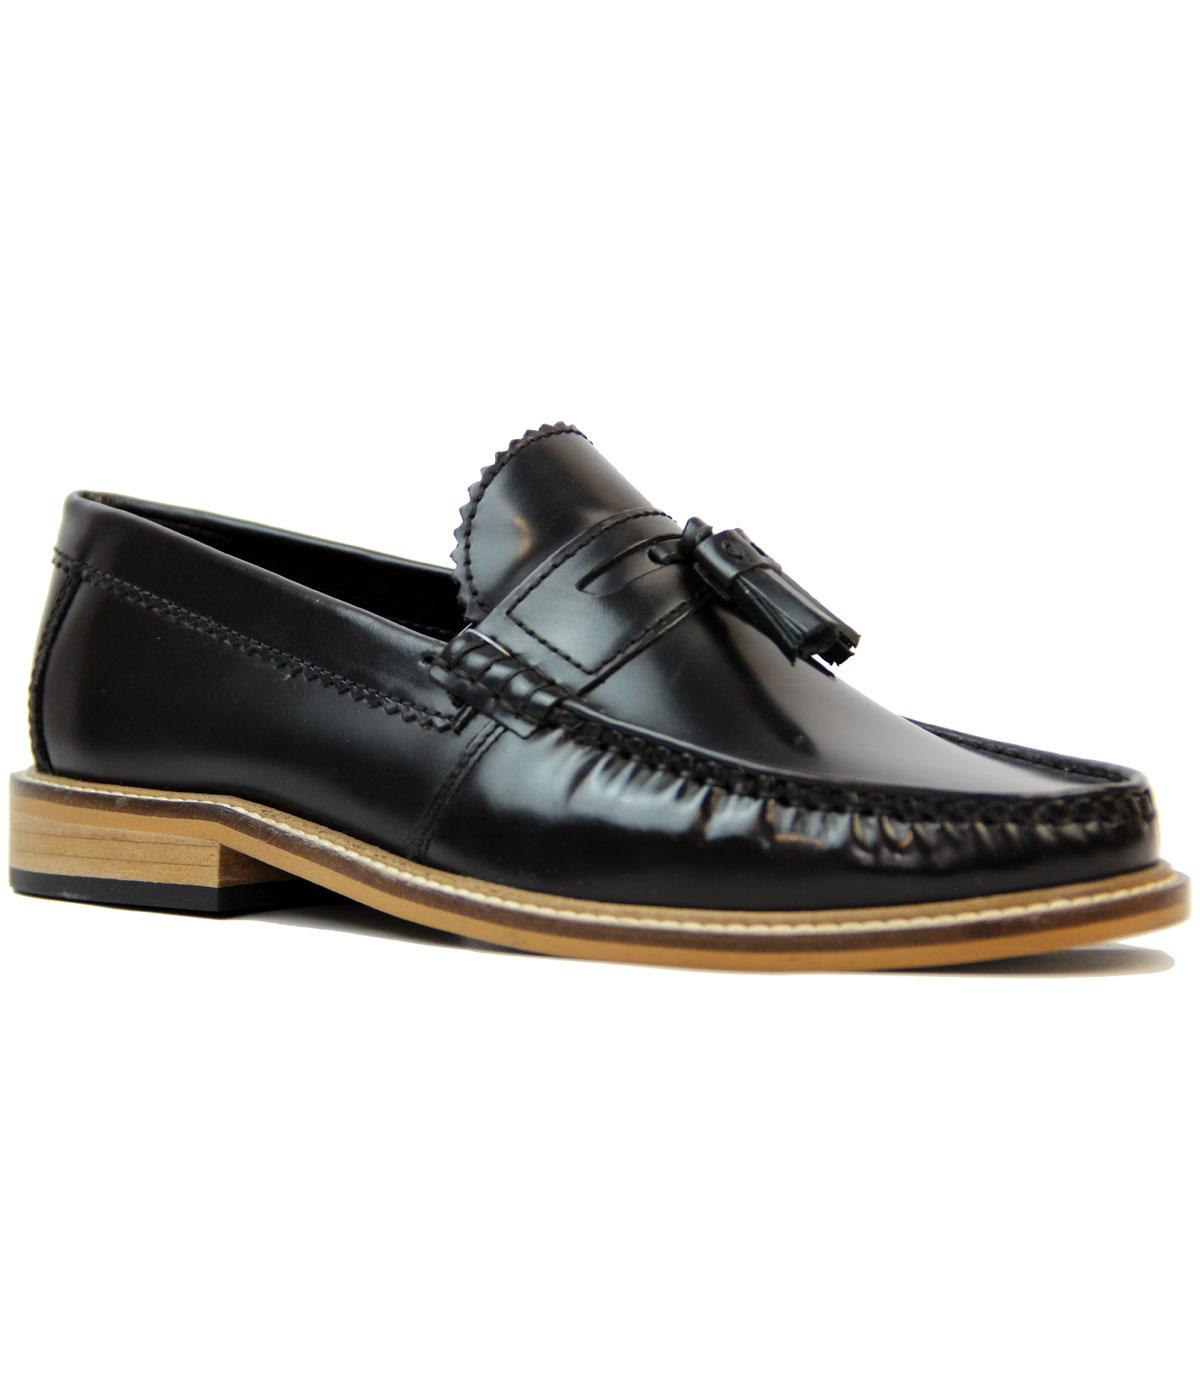 LAMBRETTA Retro Mod Hi Shine Tassel Loafer Shoes